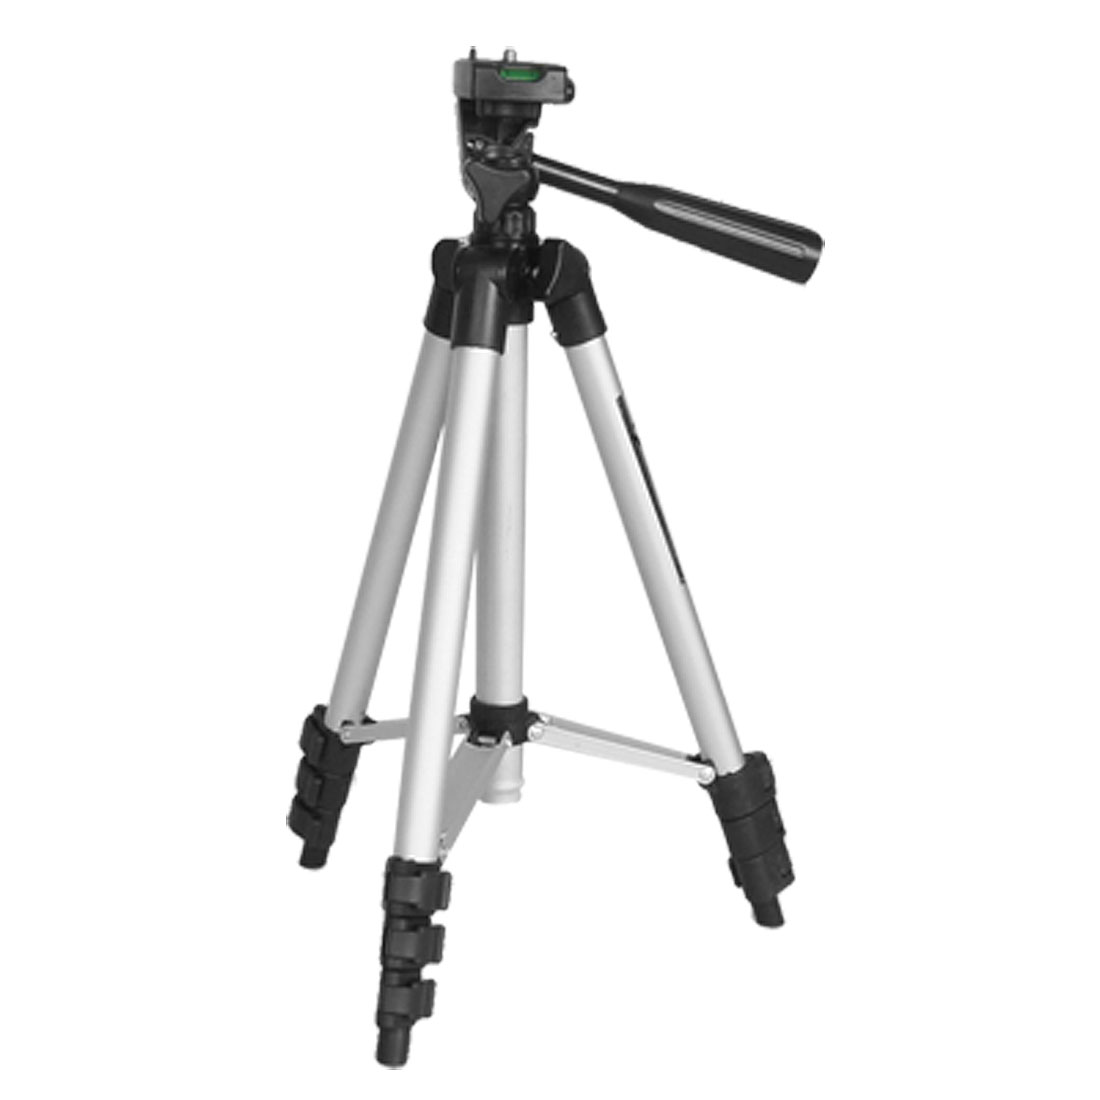 Silver Tone Black 3 Way Head Camera Video Camcorder Tripod Support 3.3Ft Height